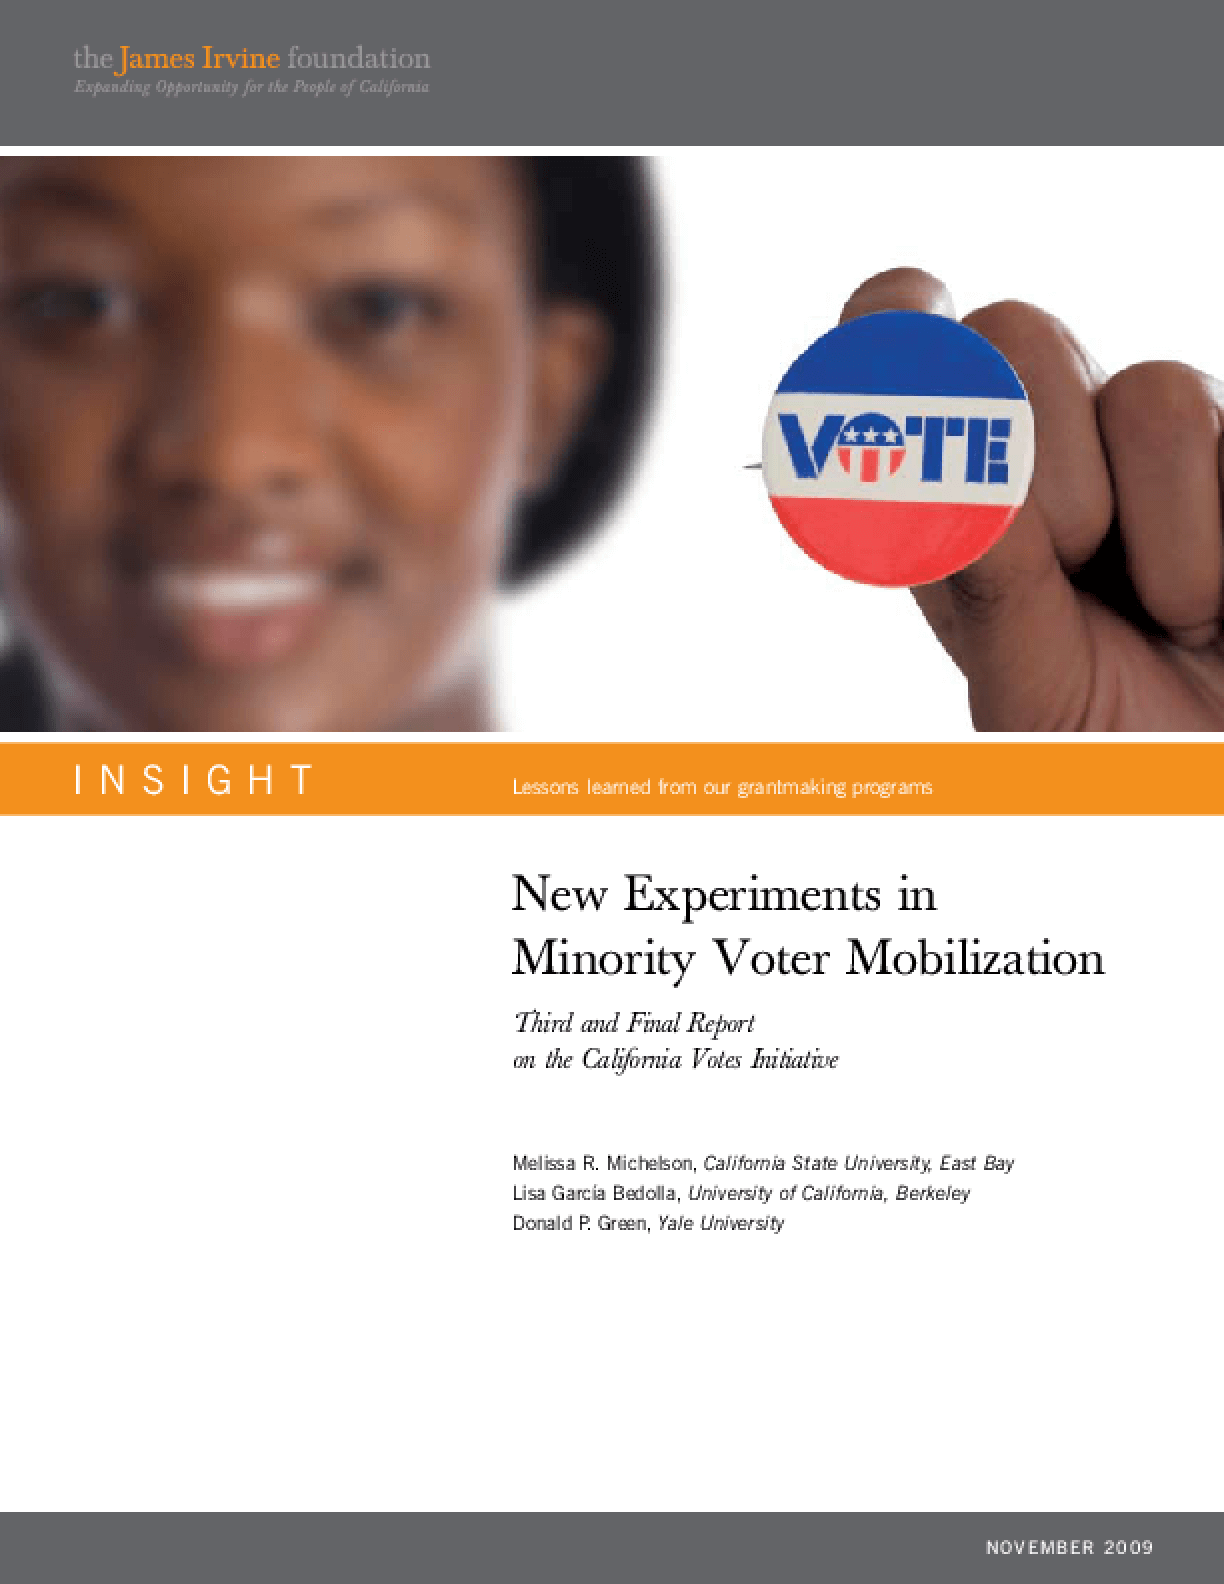 New Experiments in Minority Voter Mobilization: Third and Final Report on the California Votes Initiative